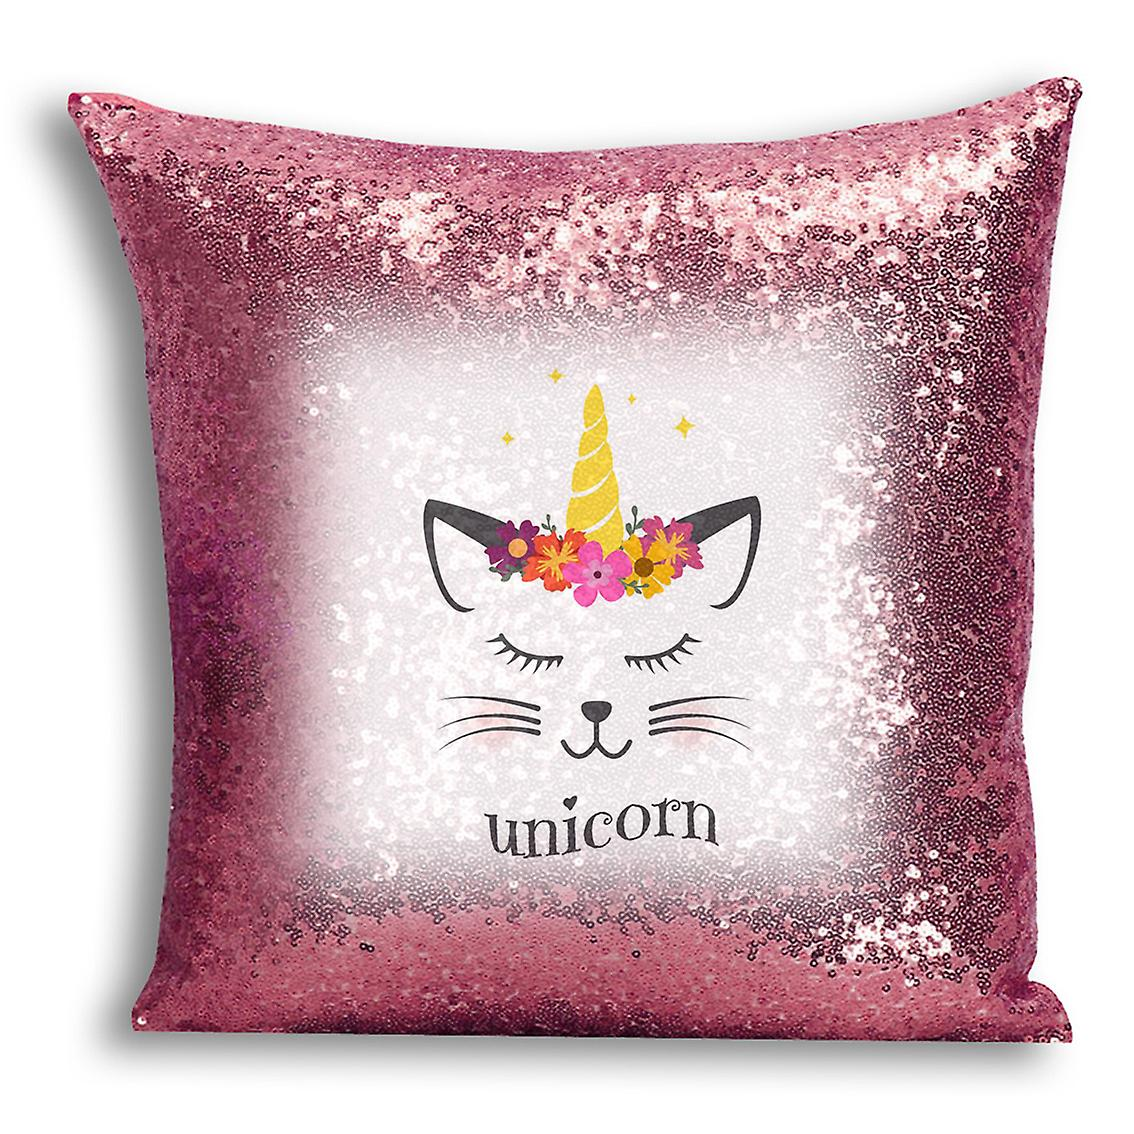 Inserted CushionPillow Cover For Gold Home Printed Sequin 2 Design Rose I tronixsUnicorn Decor With WH2YEDI9